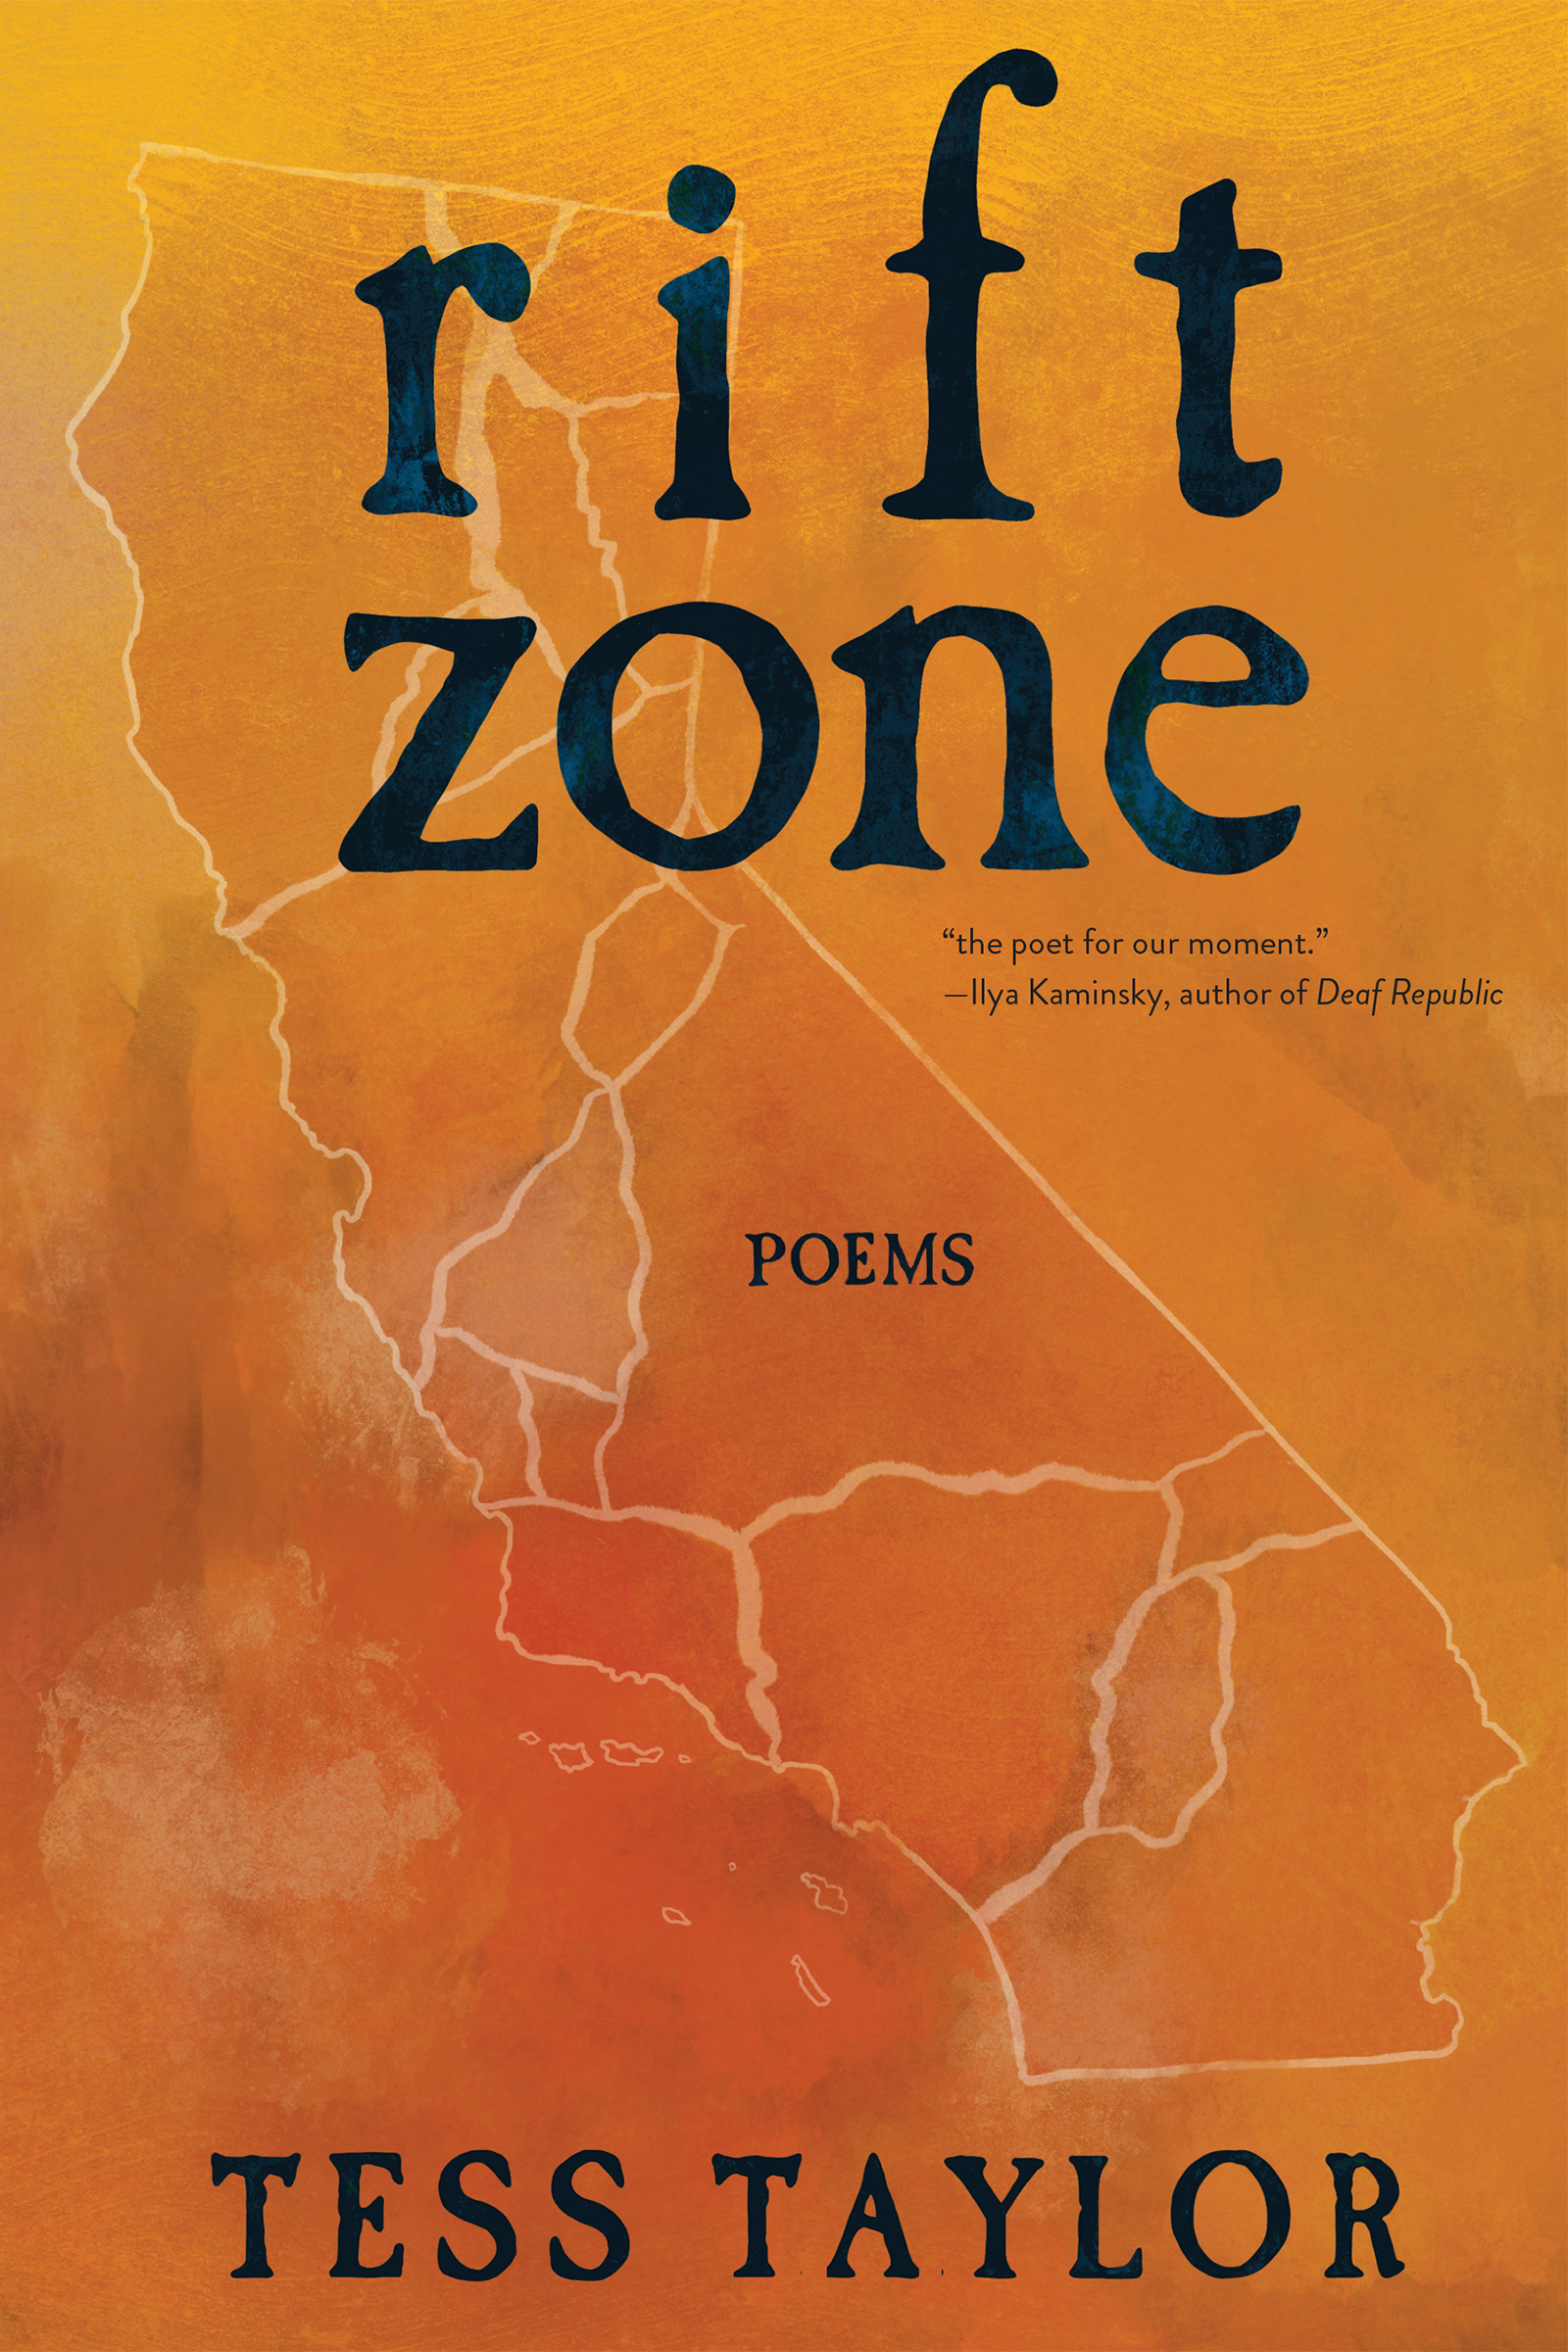 An orange background with a drawing of the state of California at the center and dark blue script that reads Rift Zone poems by Tess Taylor.